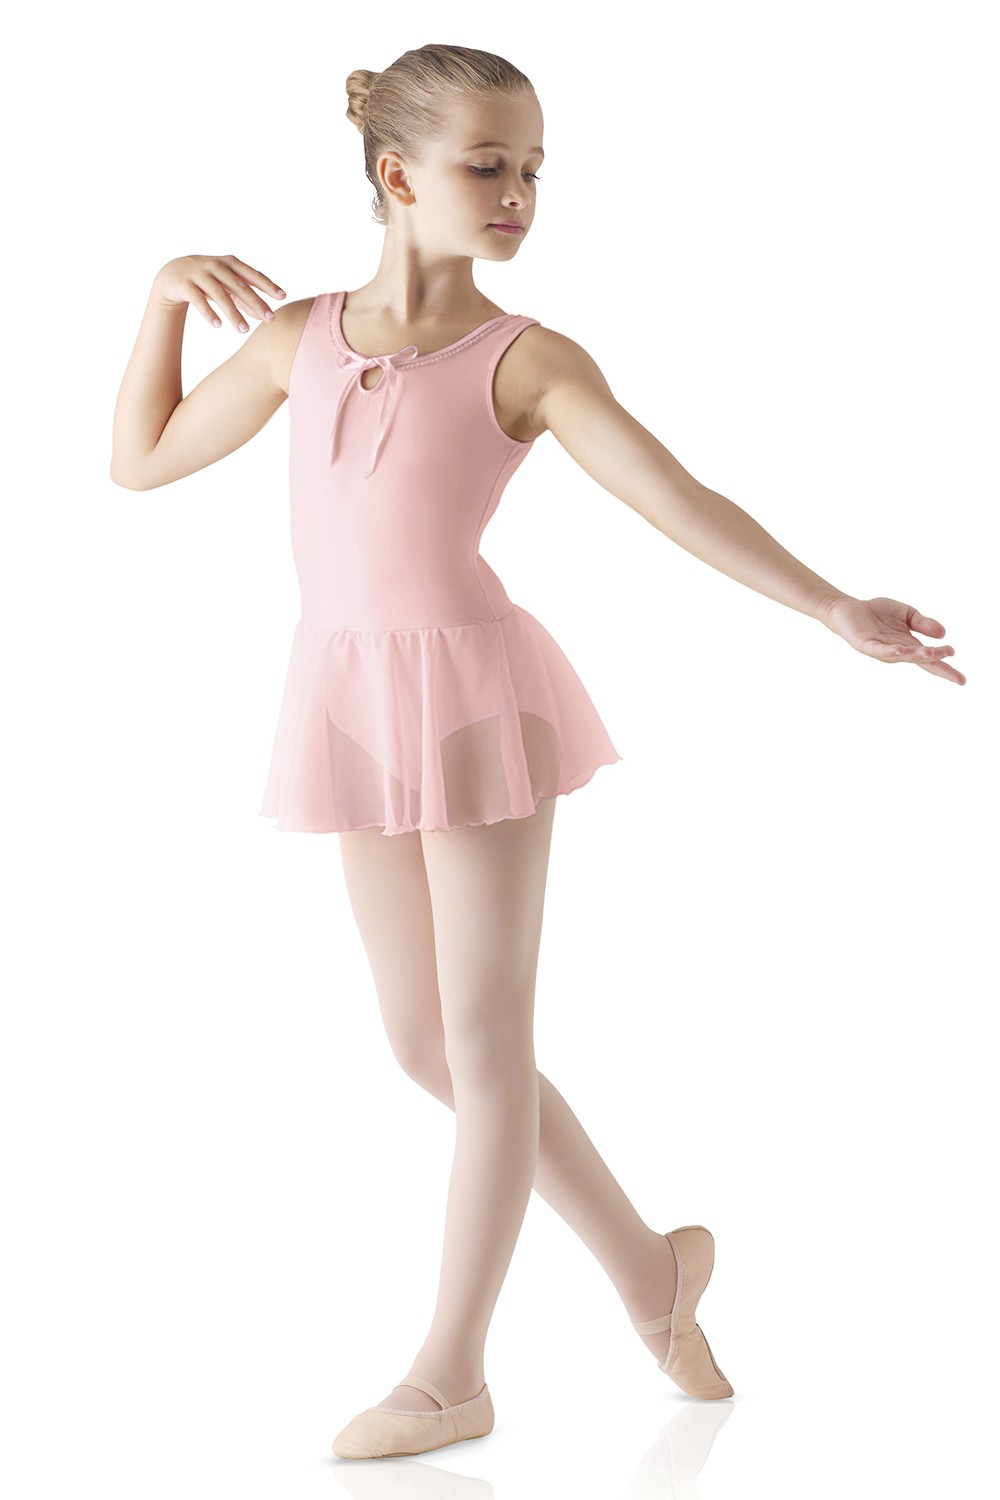 Trim Neck Skirted Leotard Children's Dance Leotards